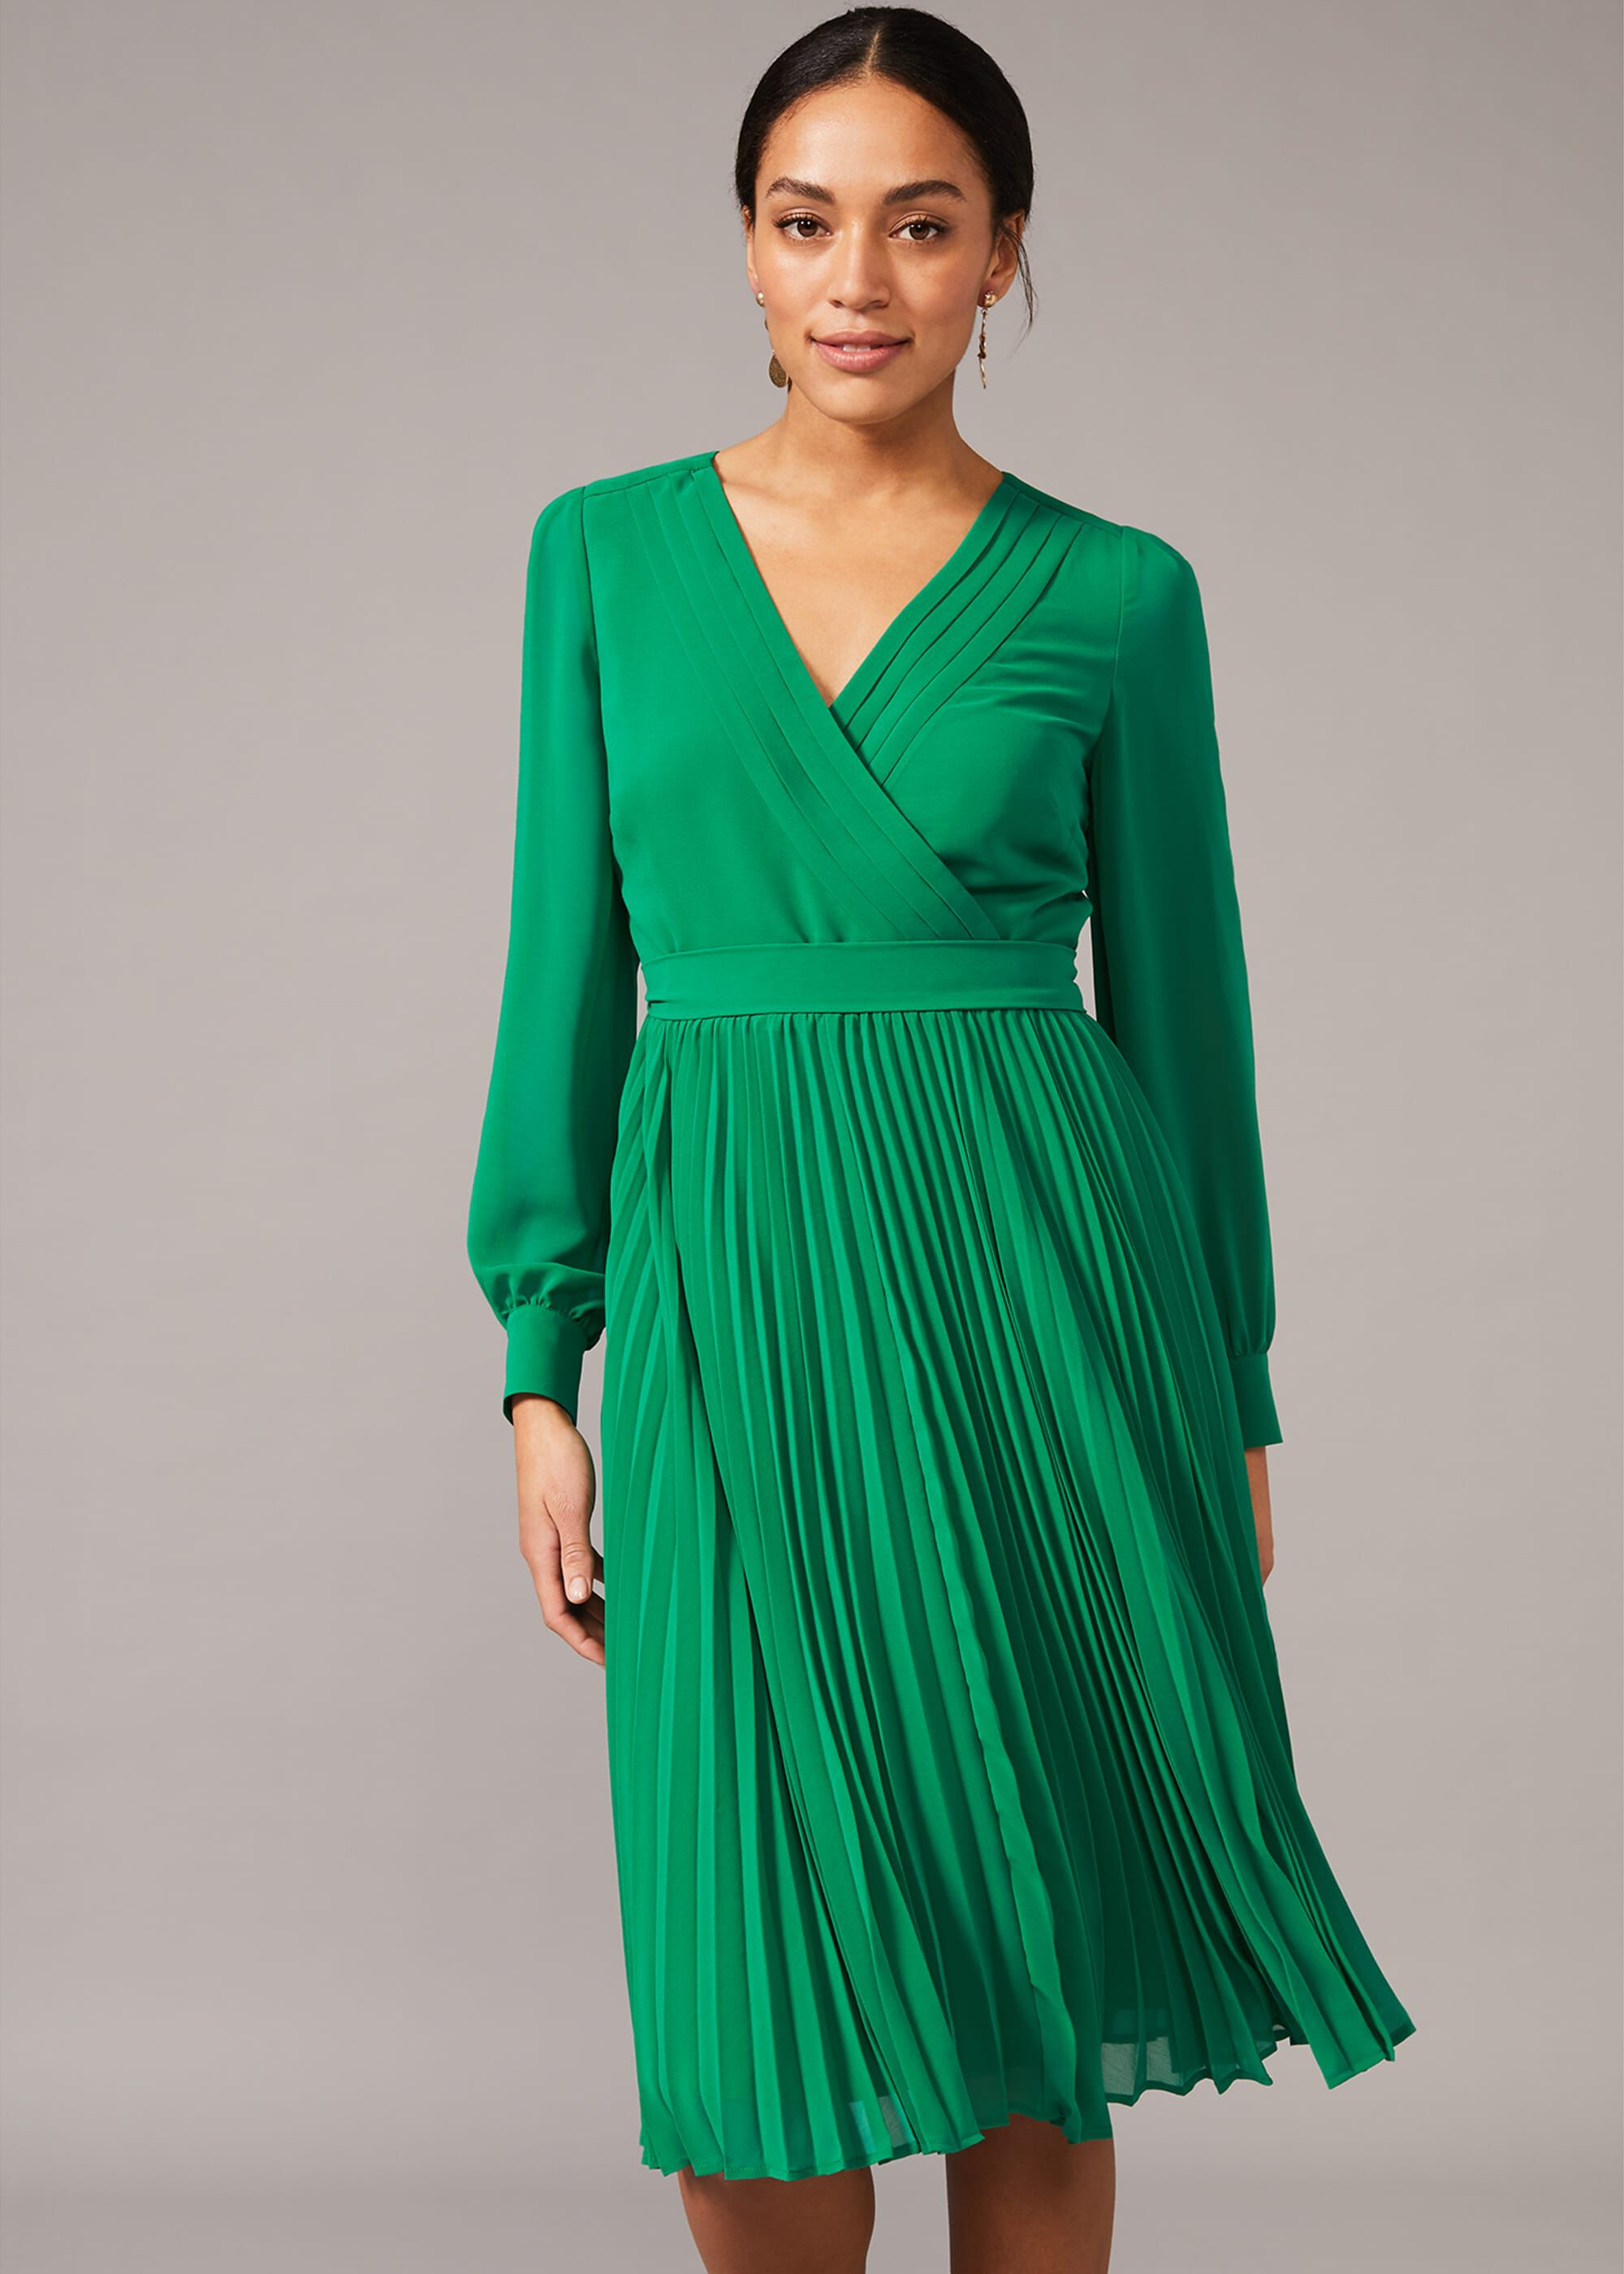 Phase Eight Isadora Pleated Skirt Dress, Green, Fit & Flare, Occasion Dress